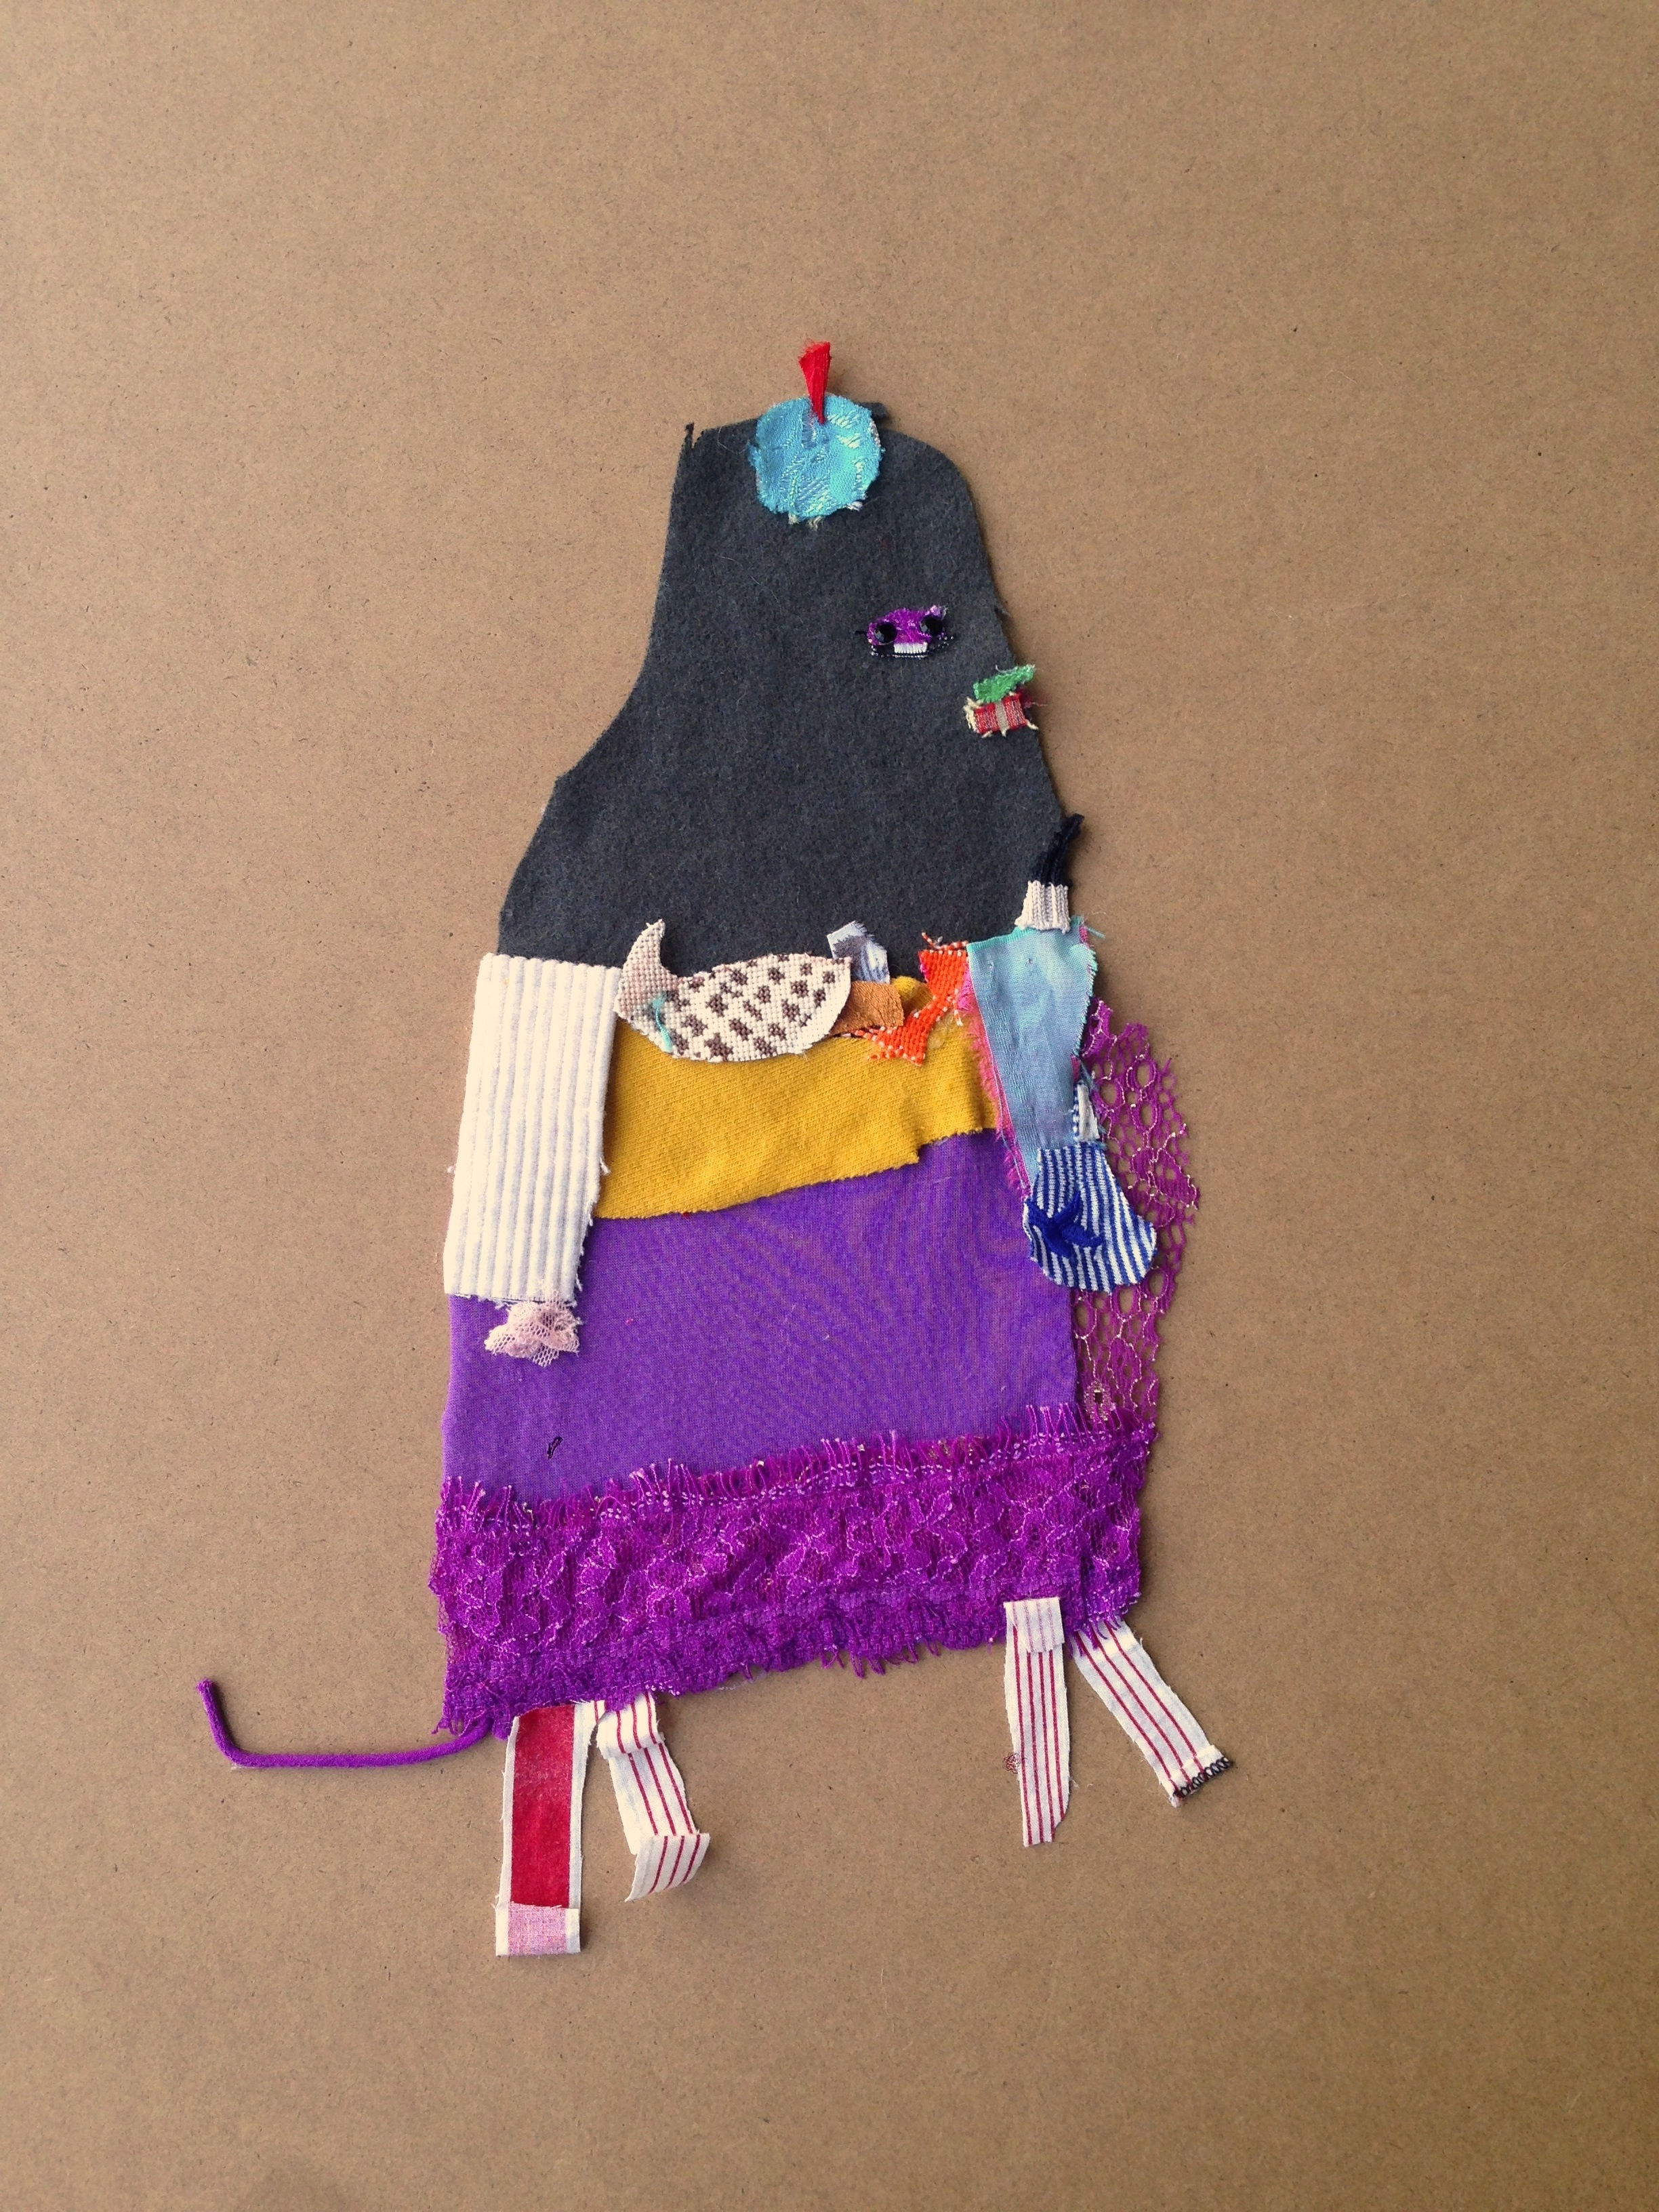 Walrus in a Nanna Suit  20.5 x 20.5 inches  Recycled fabric: Chinese jewelry bag, piece of a doll made with Oma, silk curtains, shark pajamas, old silk napkin, purple lace slinky shirt, hand me down  corduroy skirt, an heirloom cross-stitched shell on a tea towel and the trim of a summer dress.  2015